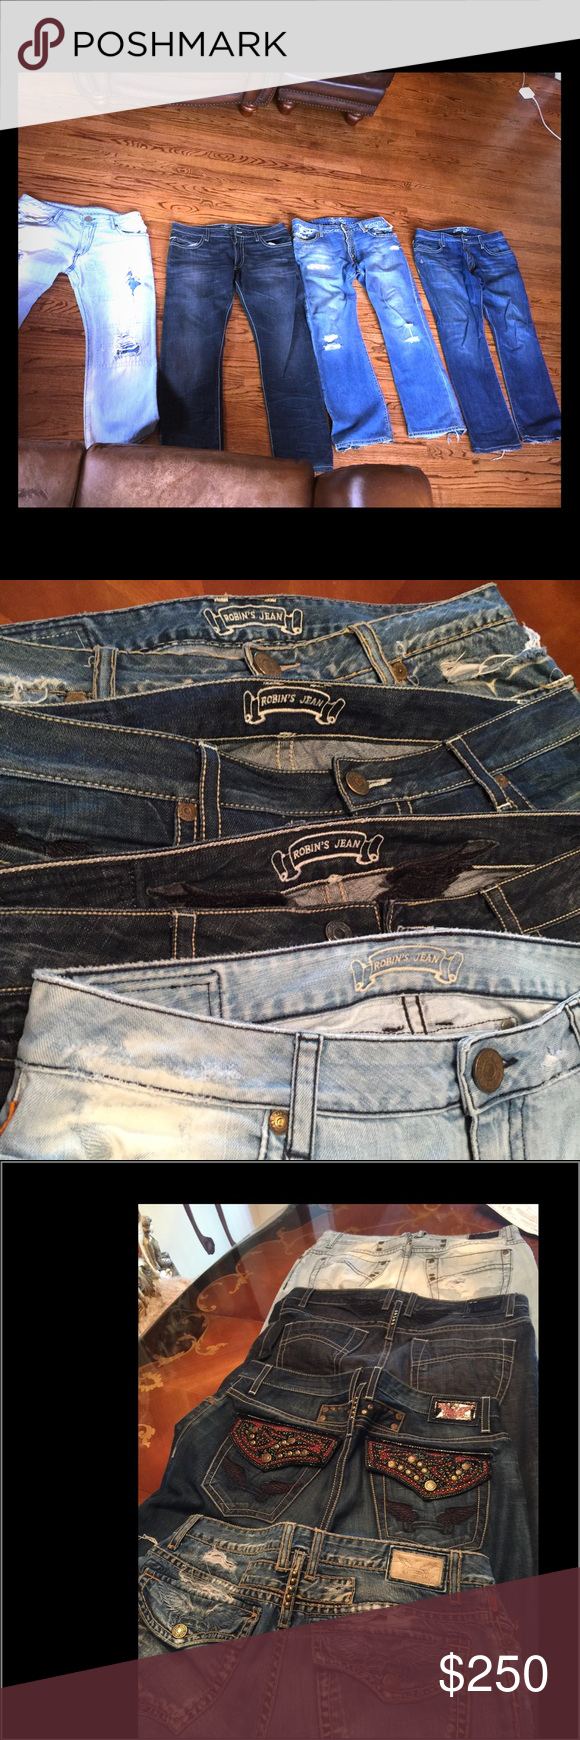 4 pair robins jeans bundle great condition 100% authentic Worn a few times need a new home  size 36 waist length 32   These jeans. Are gorgeous with each jean has a different look with there classic look robin's jeans Jeans Bootcut